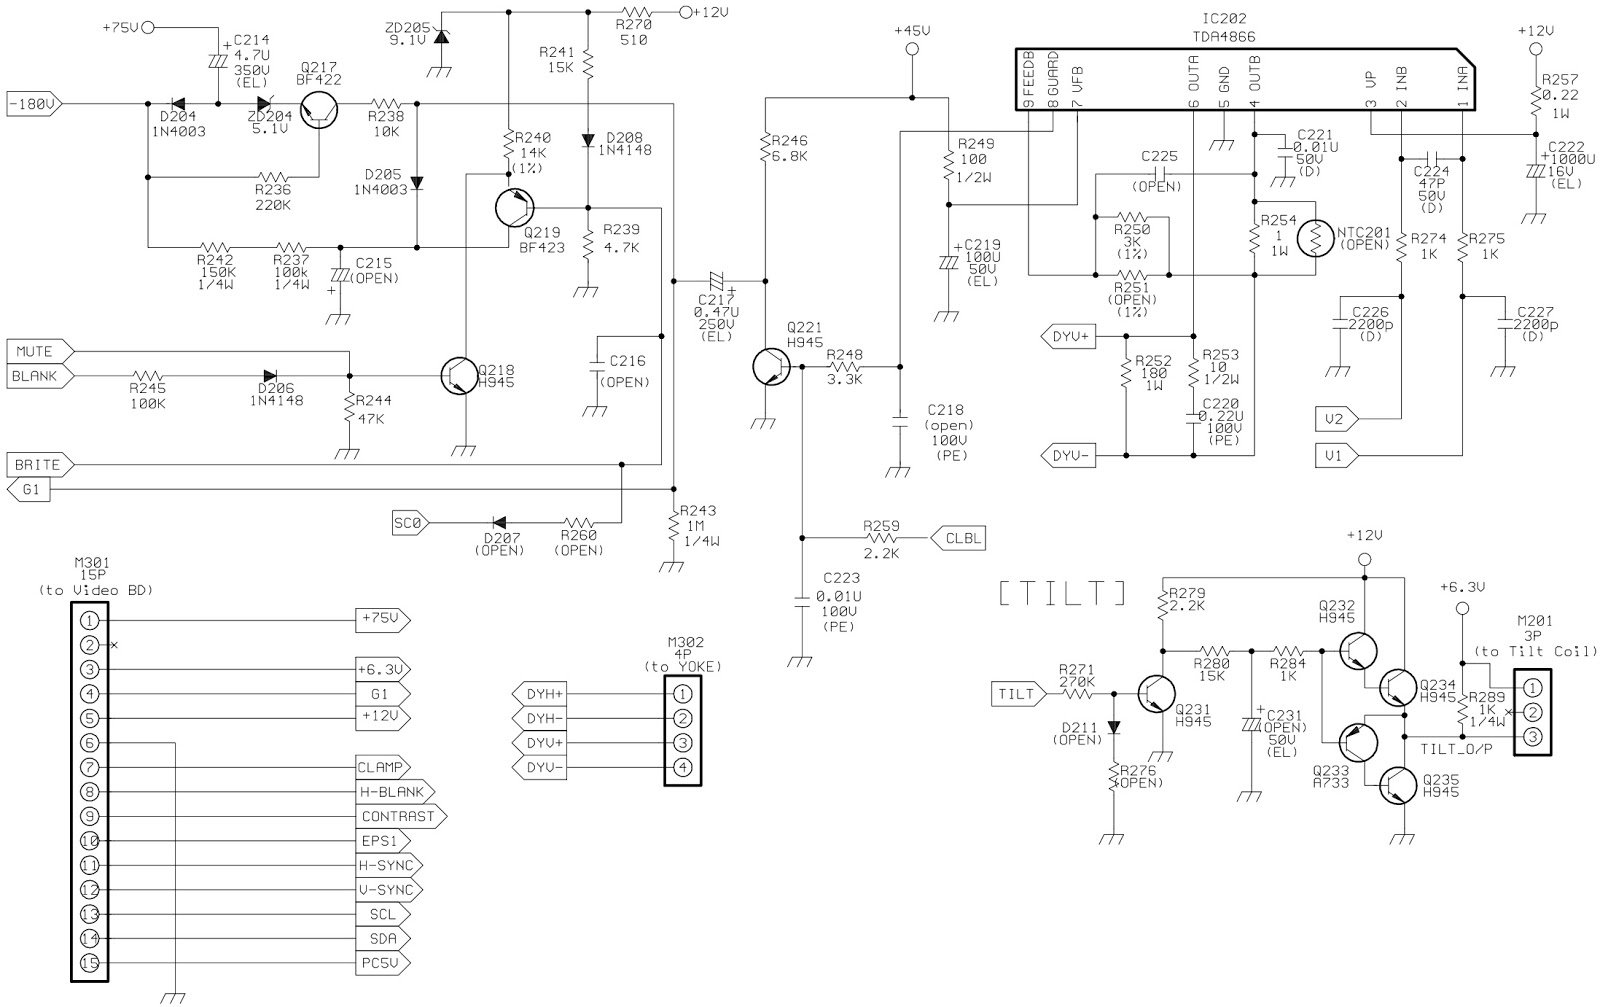 Crt Monitor Schematic Diagram Lg Circuit Wire T V Free Download Hp D2825 Acer 7254 Full Electro Help